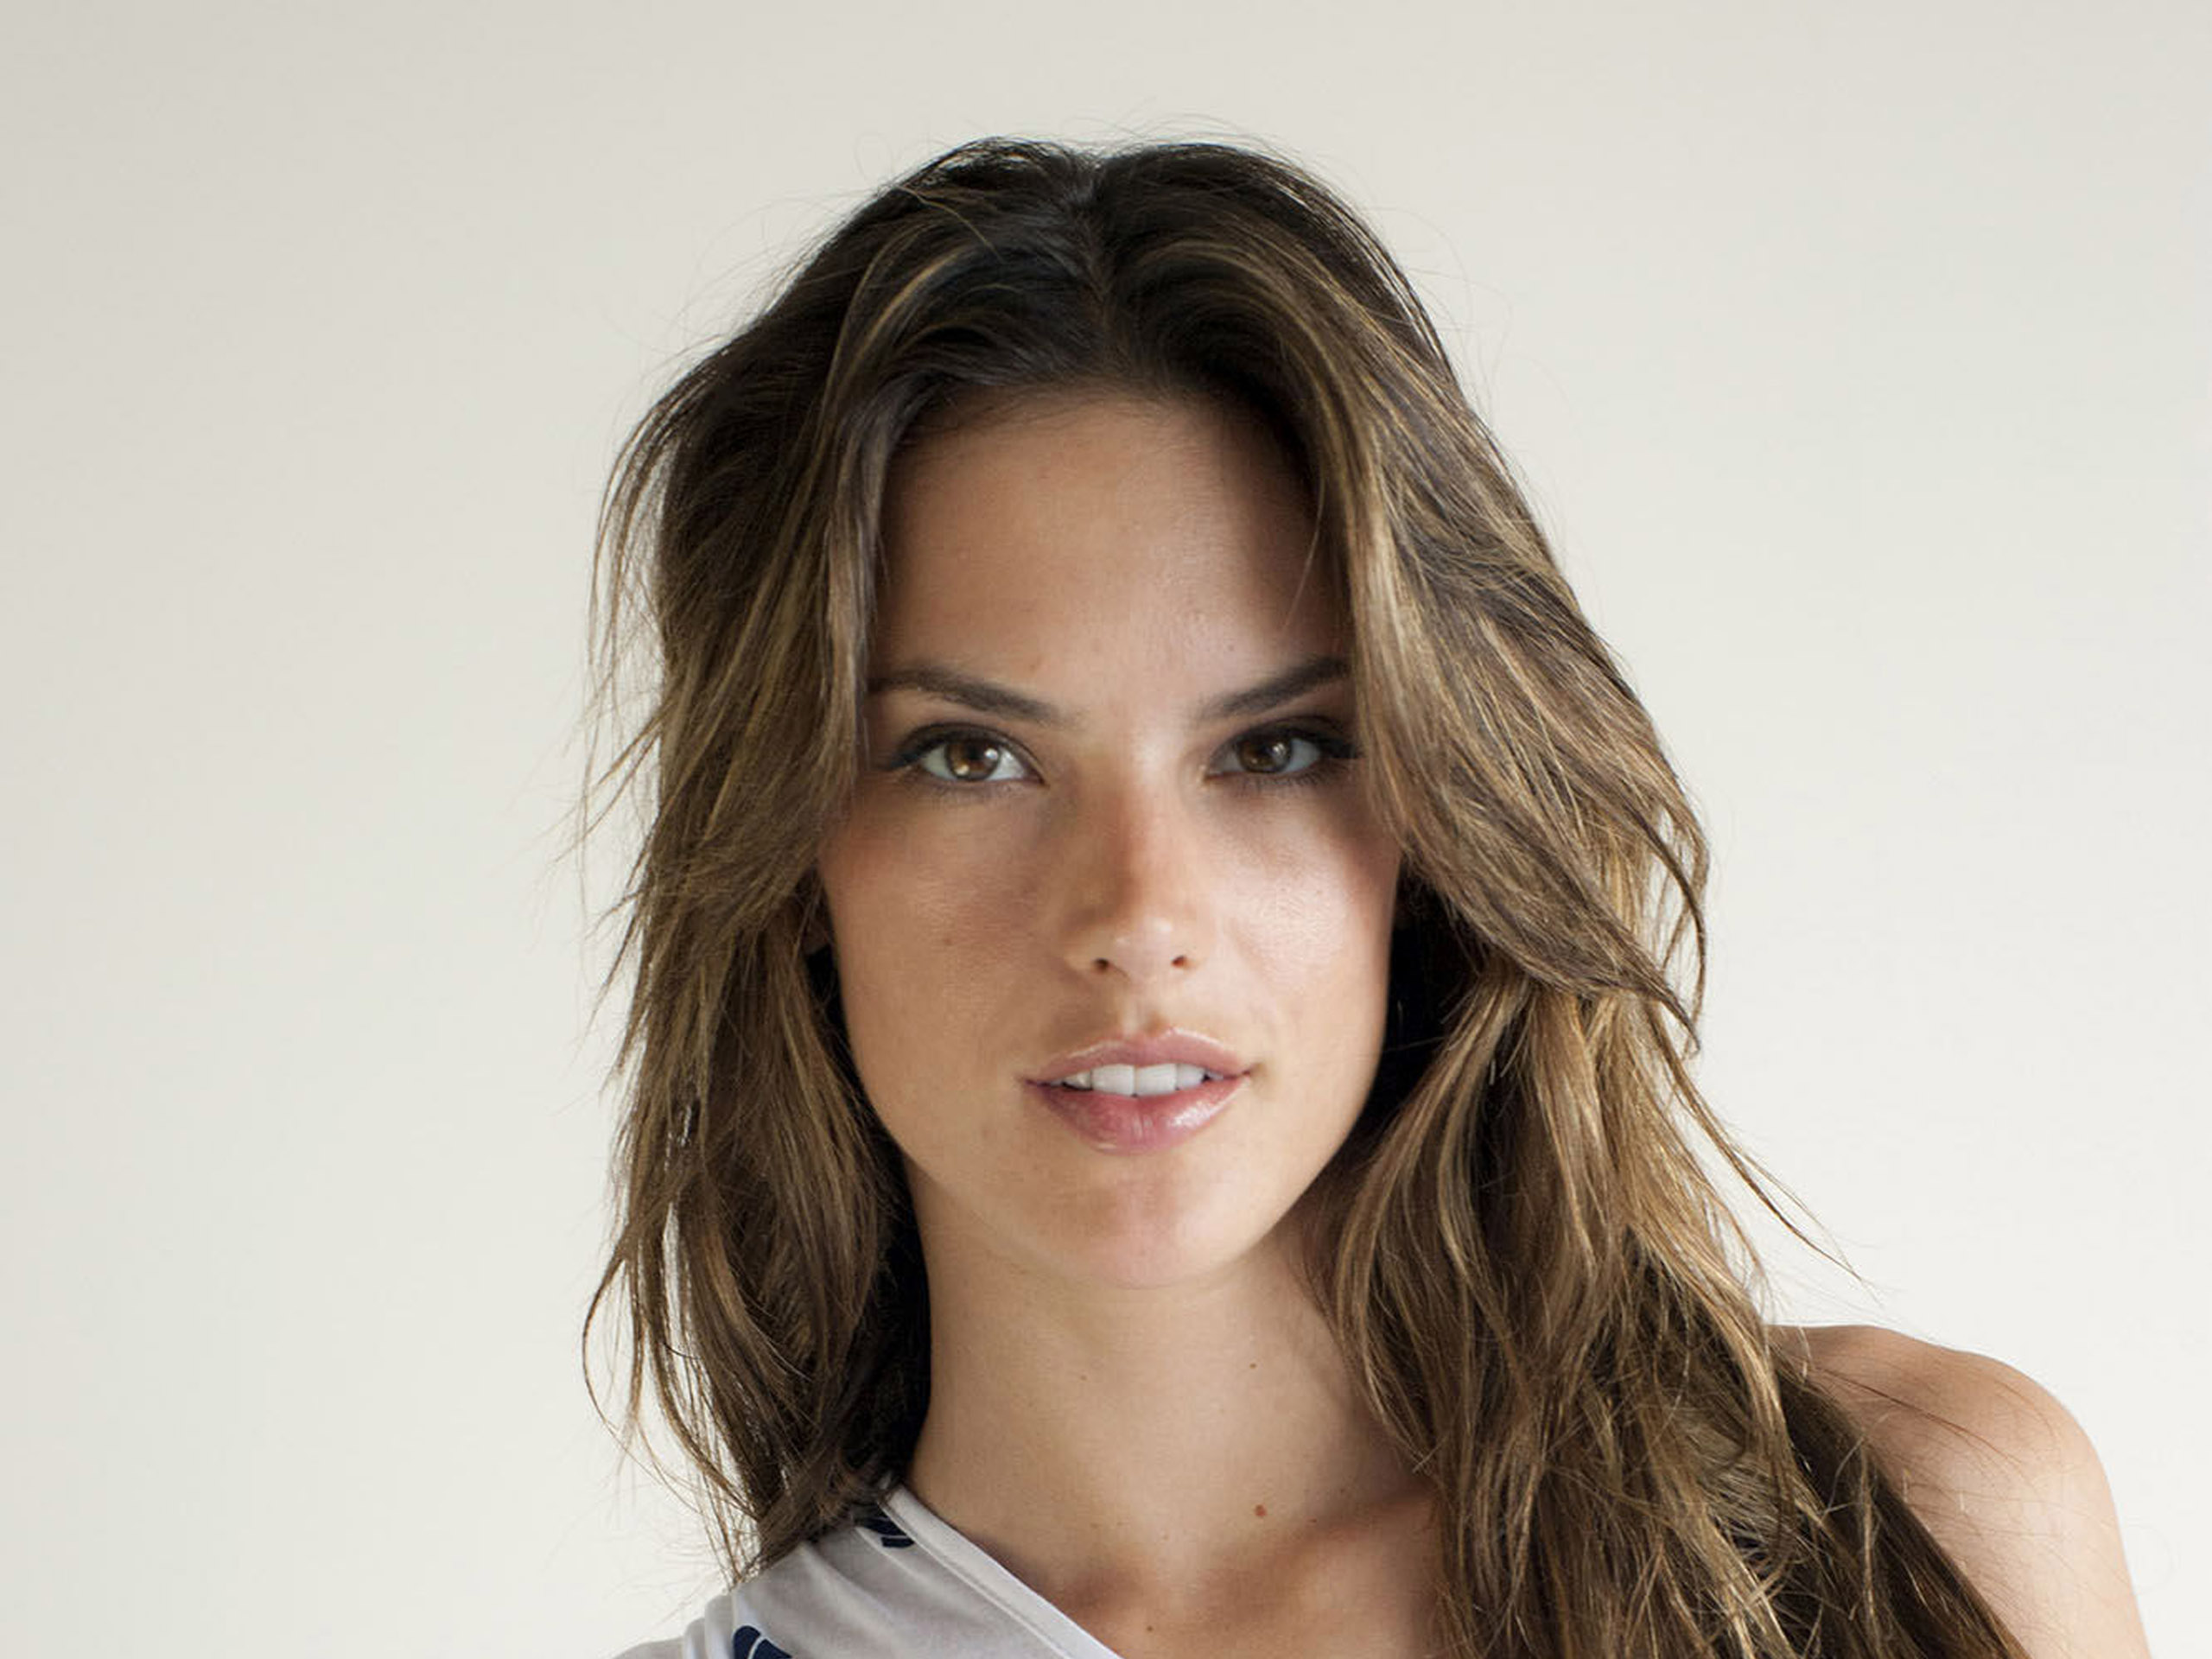 Alessandra Ambrosio Wallpapers High Quality Download Free